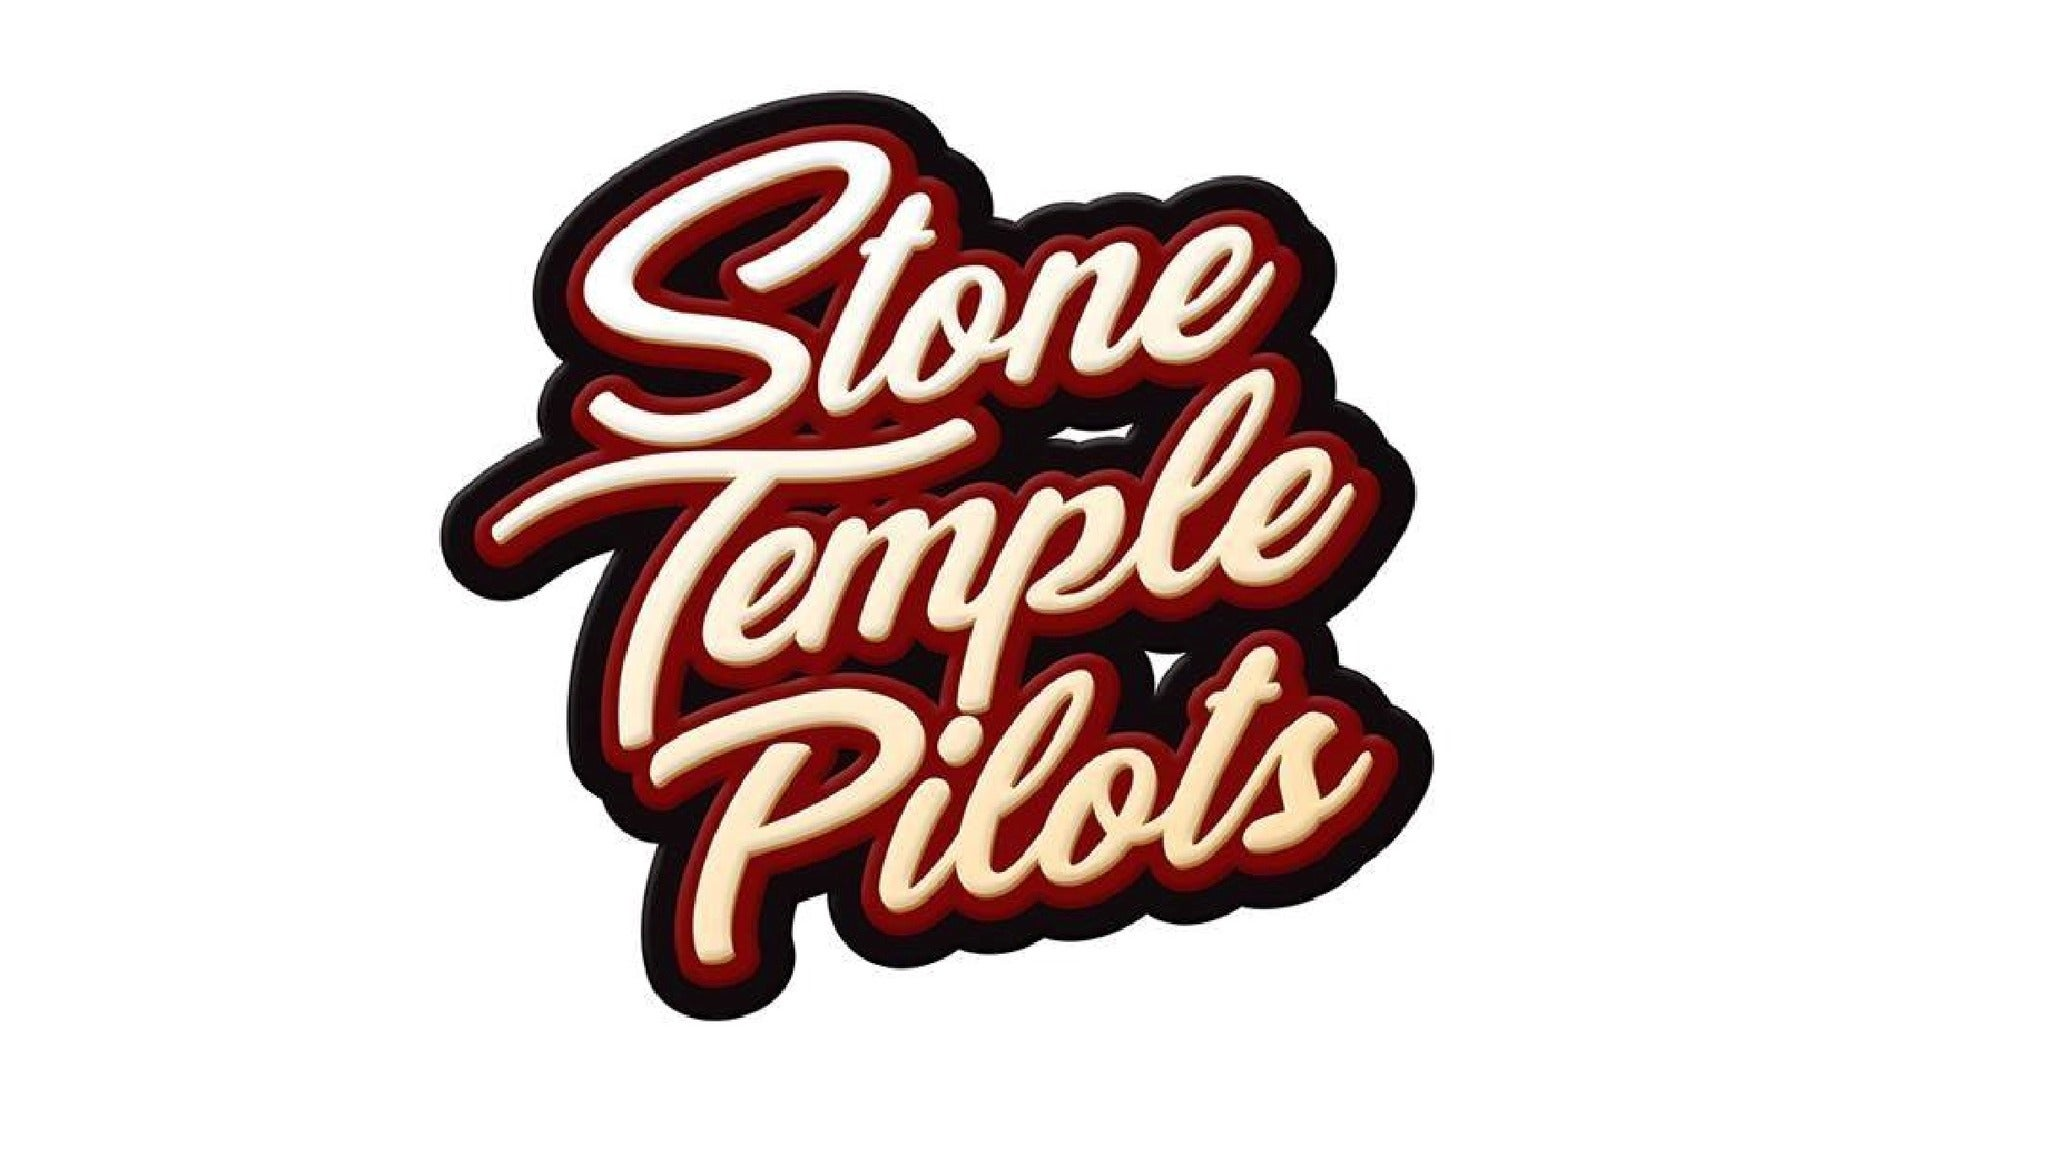 Stone Temple Pilots at The Catalyst-CA